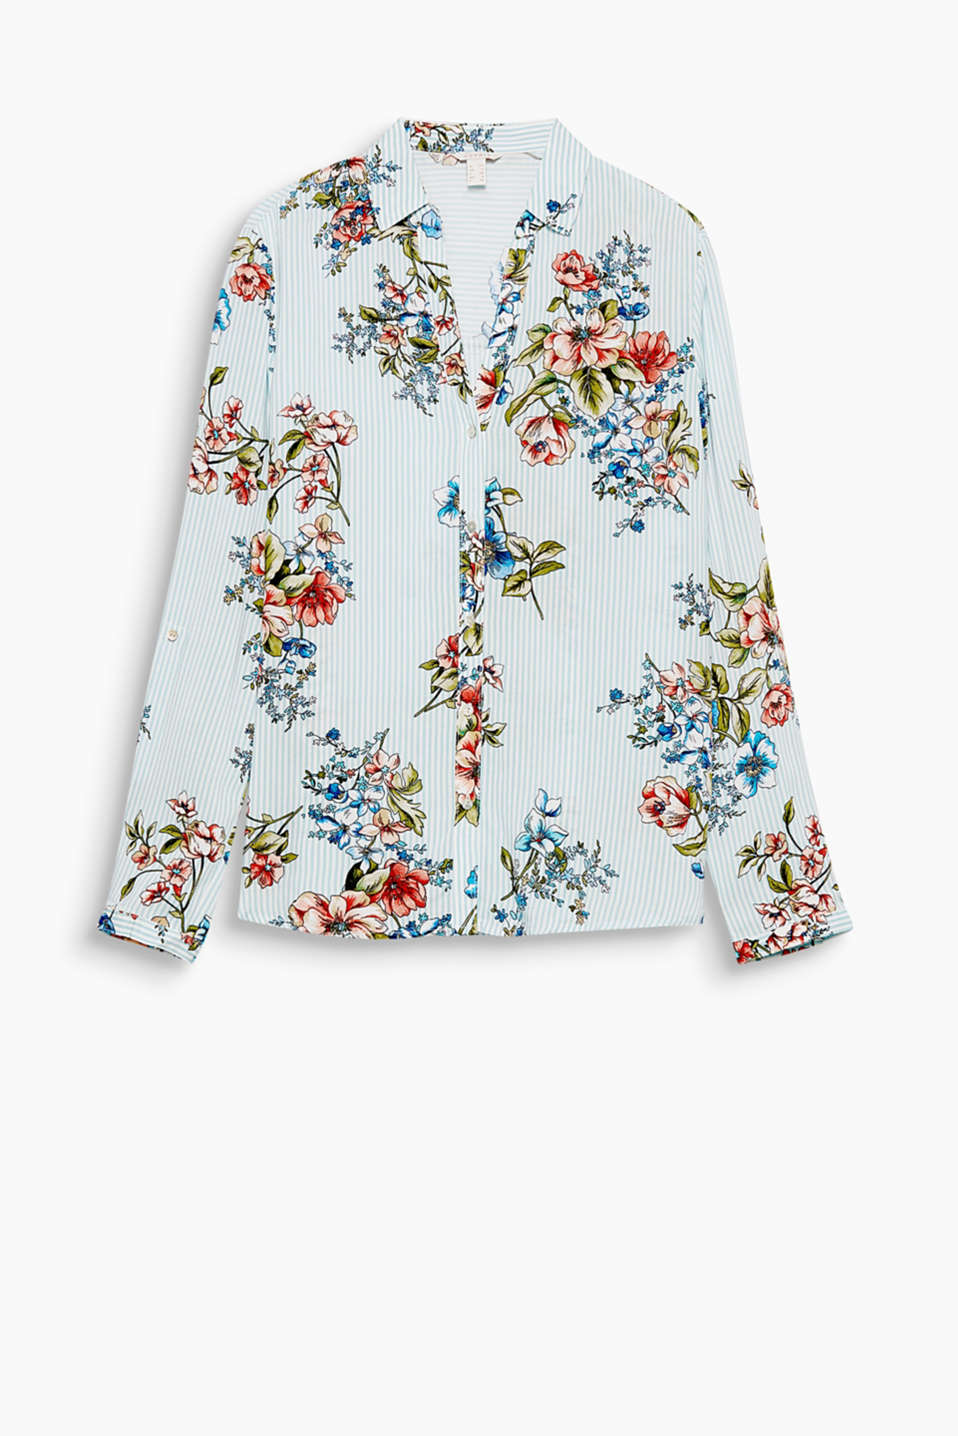 Flowing blouse with an innovative print, open collar and adjustable, turn-up sleeves